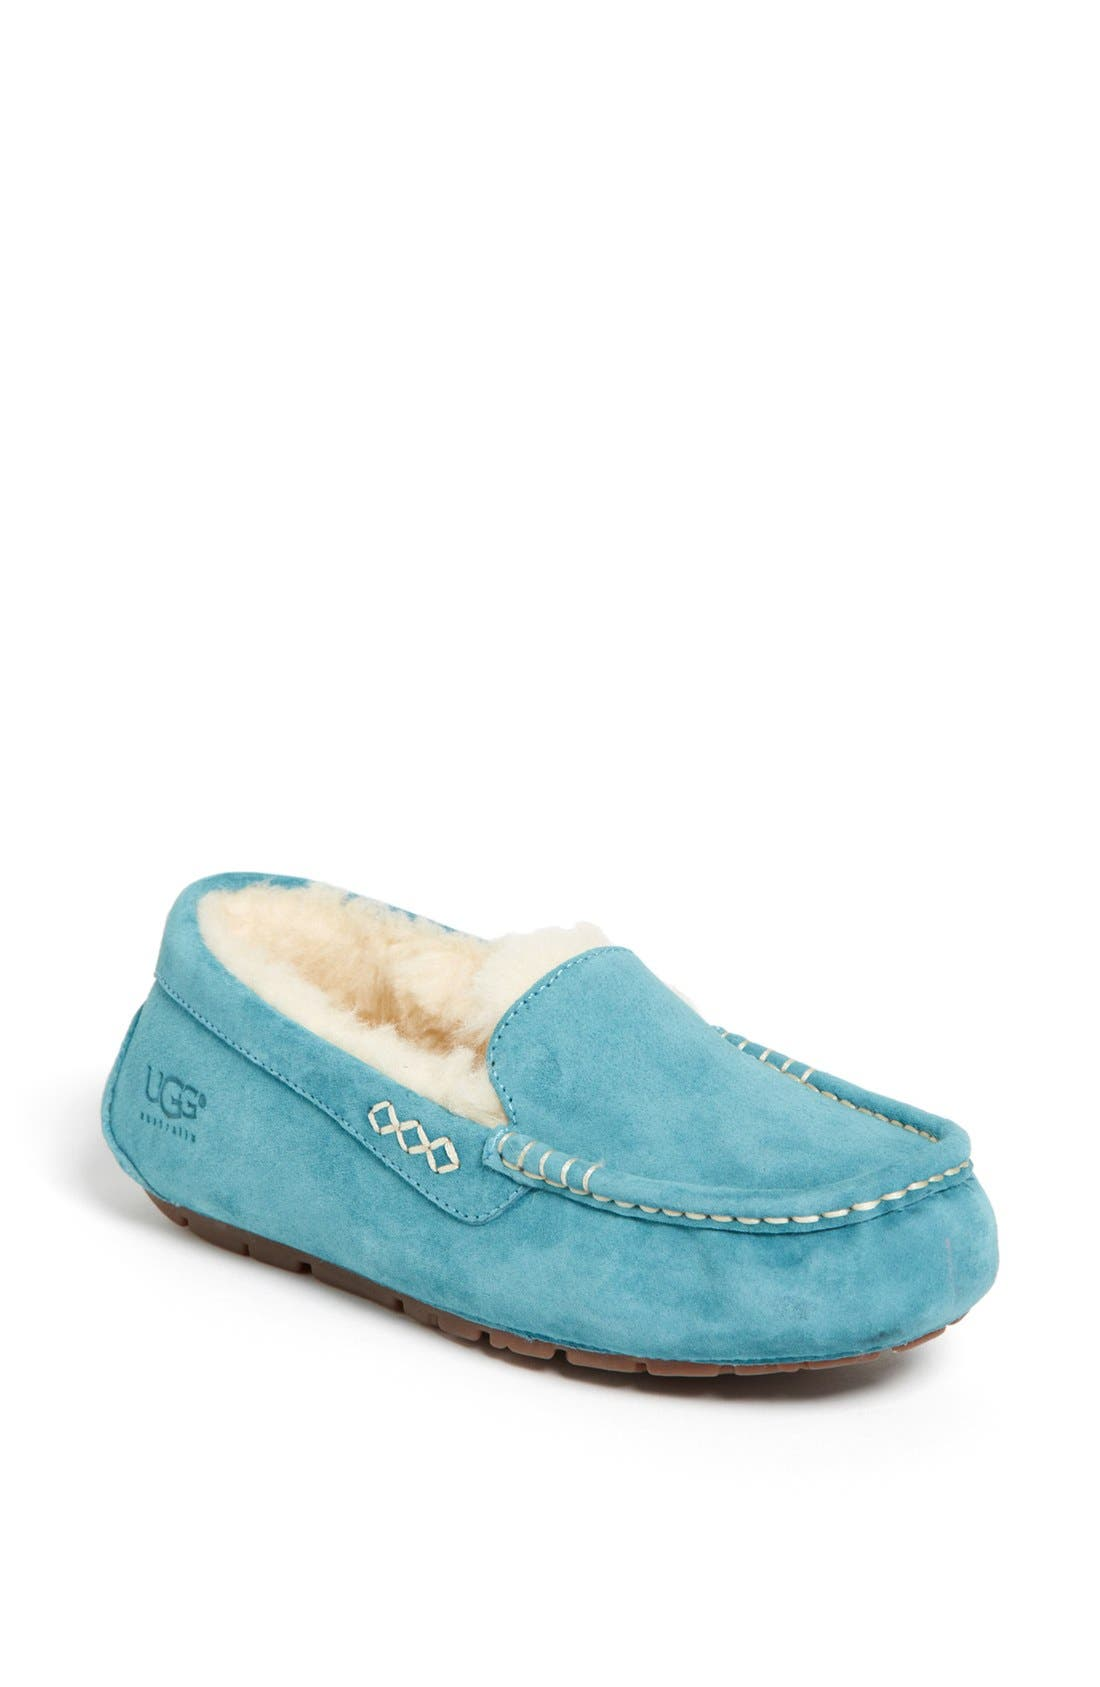 Main Image - UGG® 'Ansley' Slipper (Women) (Exclusive Color)